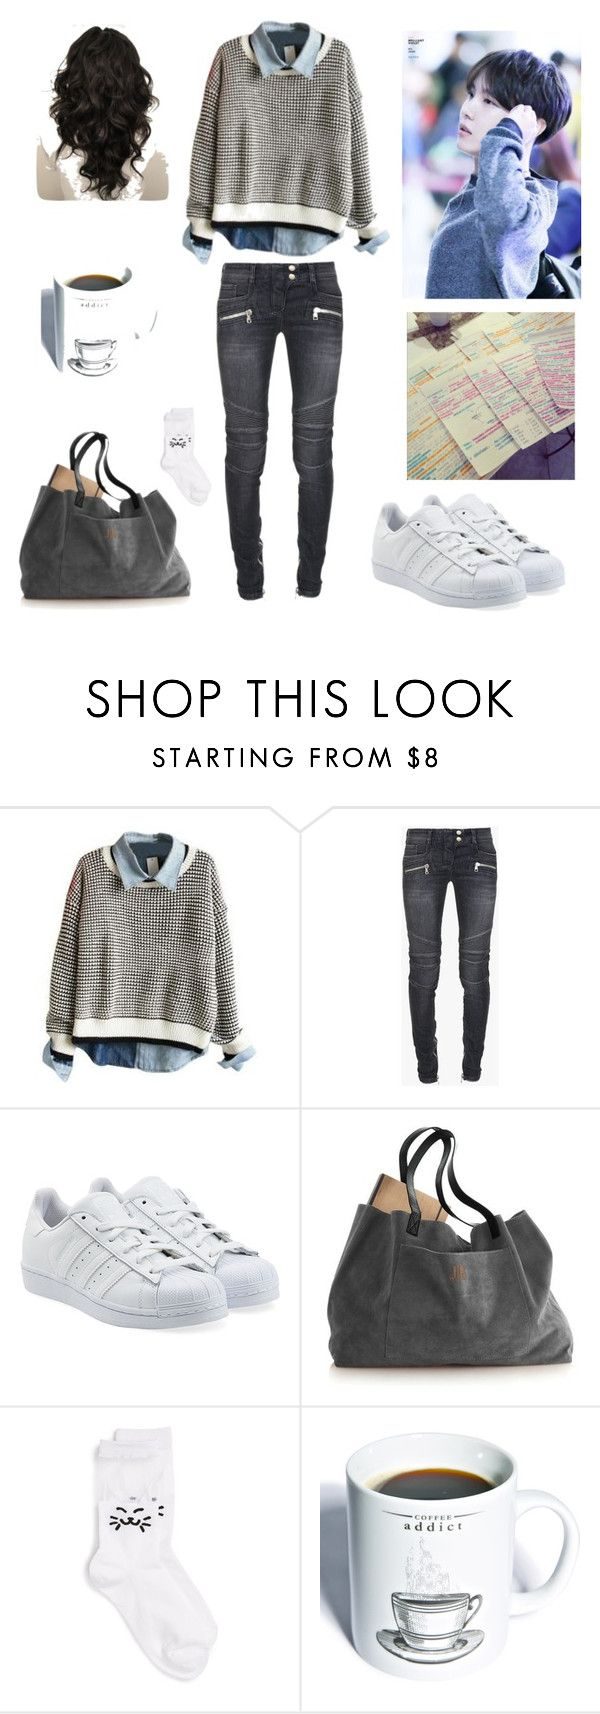 """""""#33"""" by mygreekaesthetic ❤ liked on Polyvore featuring Balmain, adidas Originals, Girly, Gift Republic, women's clothing, women, female, woman, misses and juniors"""